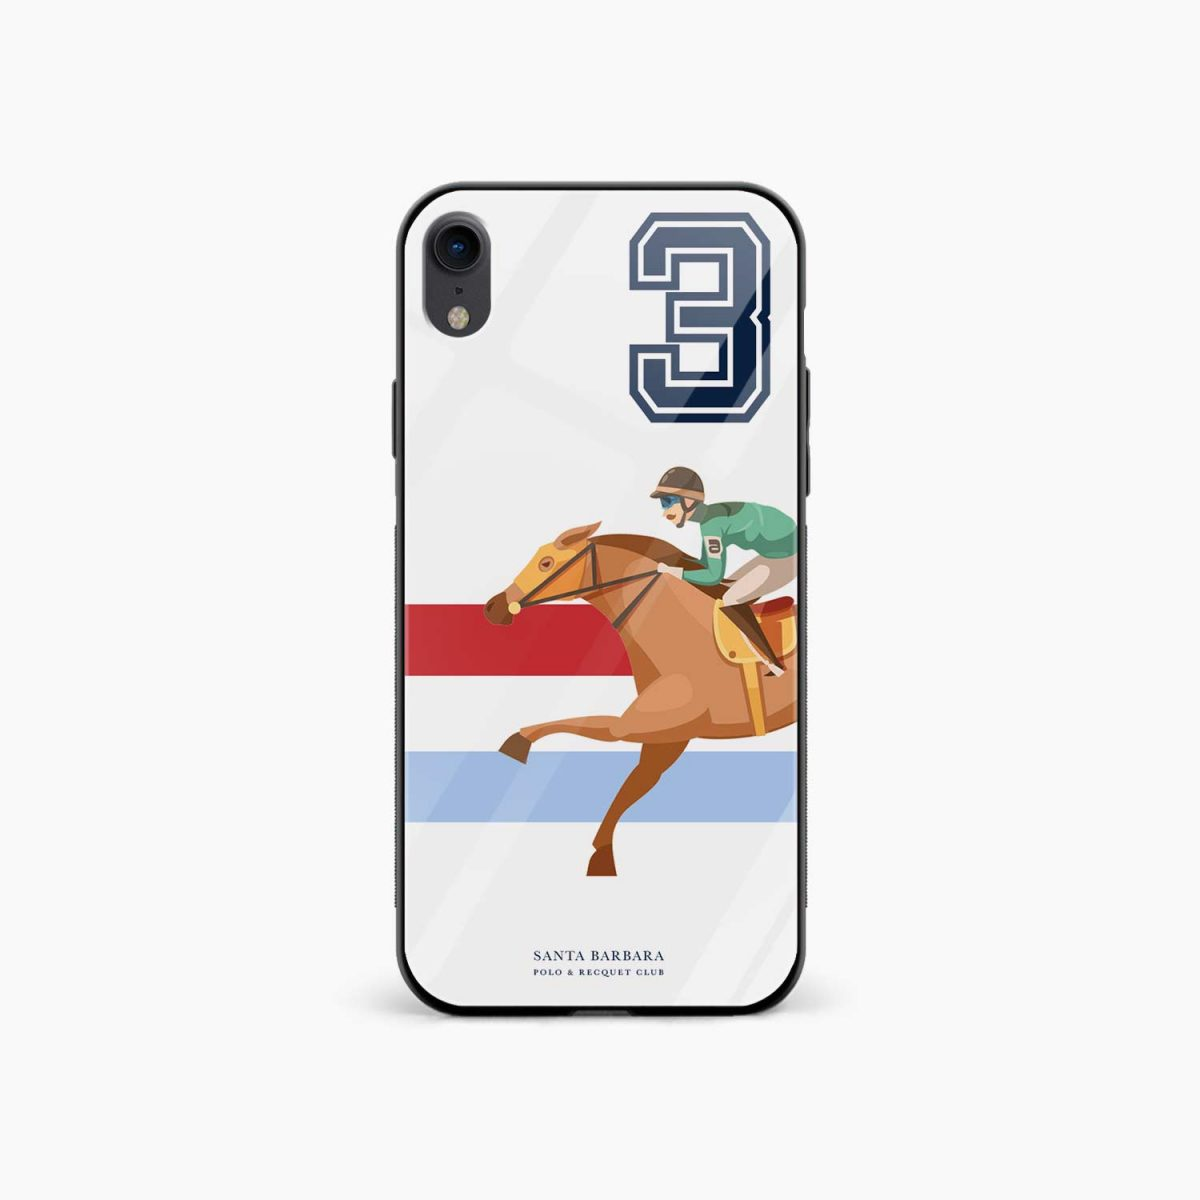 3 d santa barbara polo apple iphone xr back cover front view